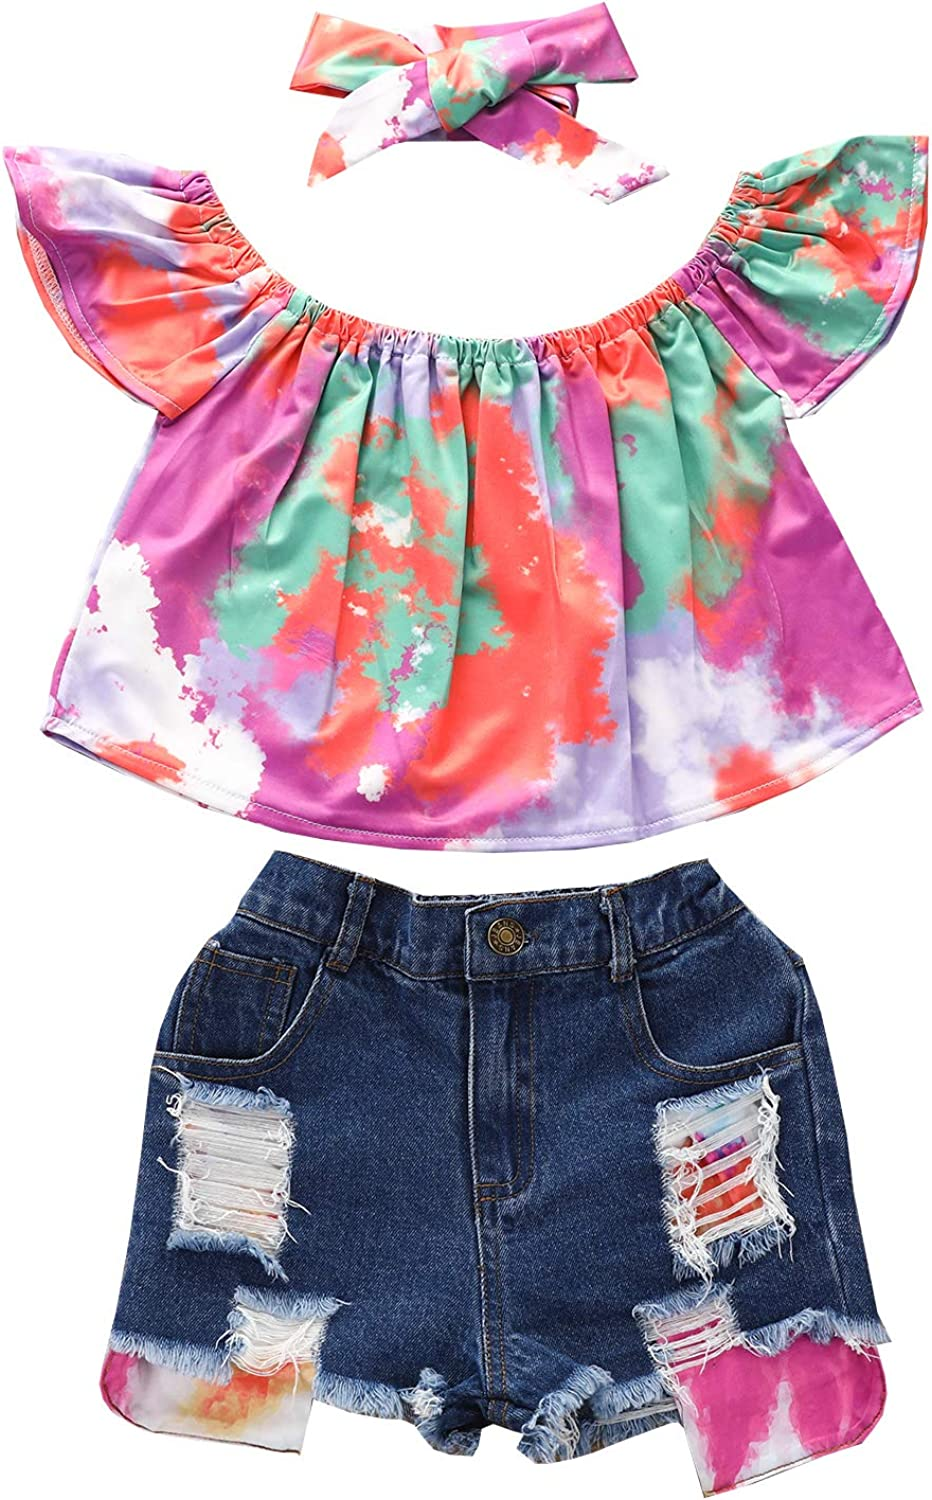 Toddler Baby Girls Off Shoulder Ruffle Short Sleeve Tops Ripped Denim Shorts Outfits Clothes Set